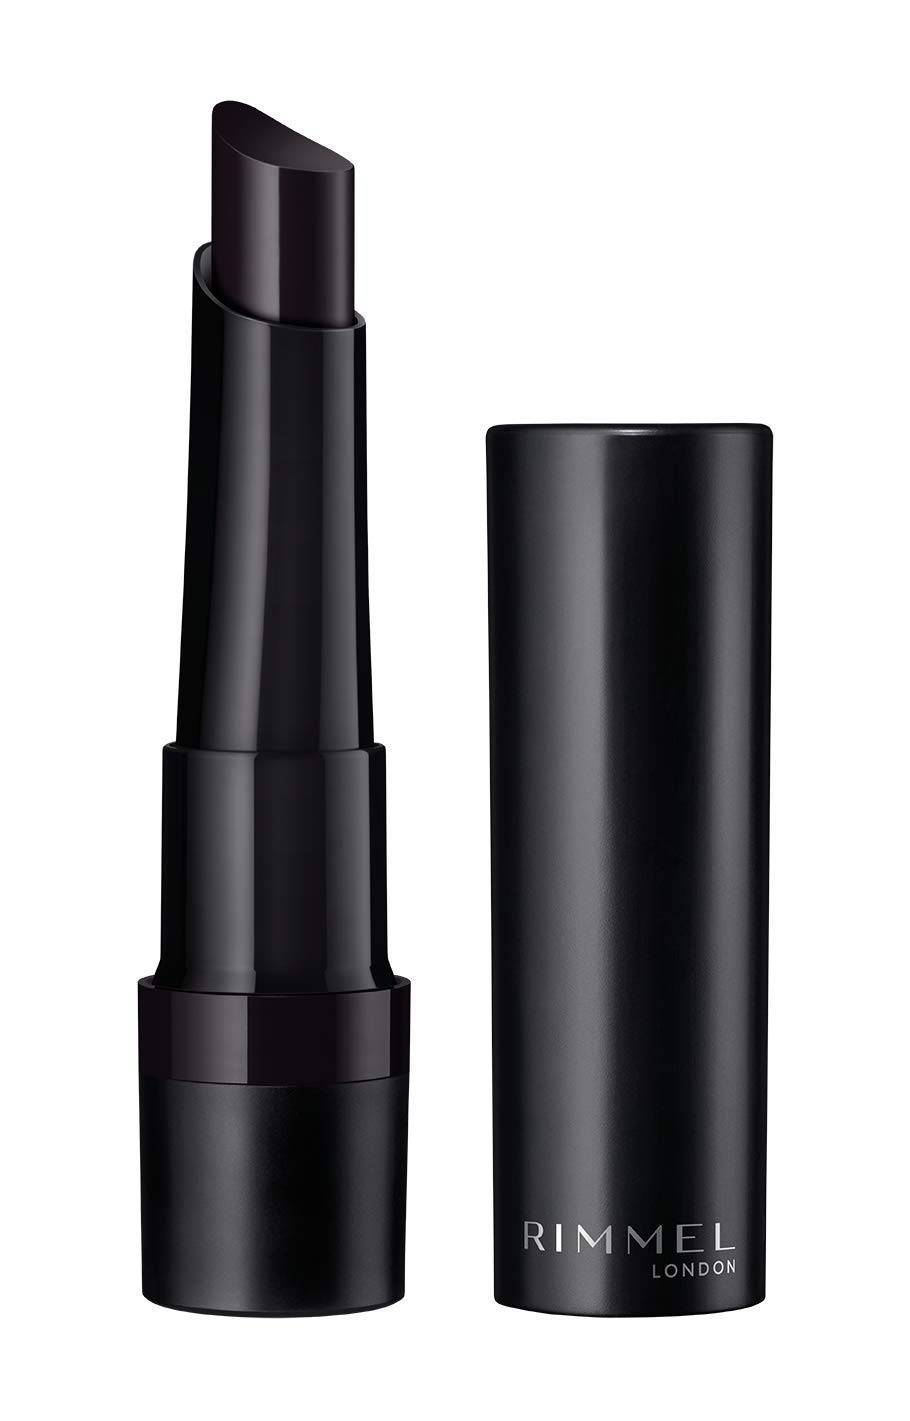 Rimmel Lasting Finish Extreme Lipstick in Off Black